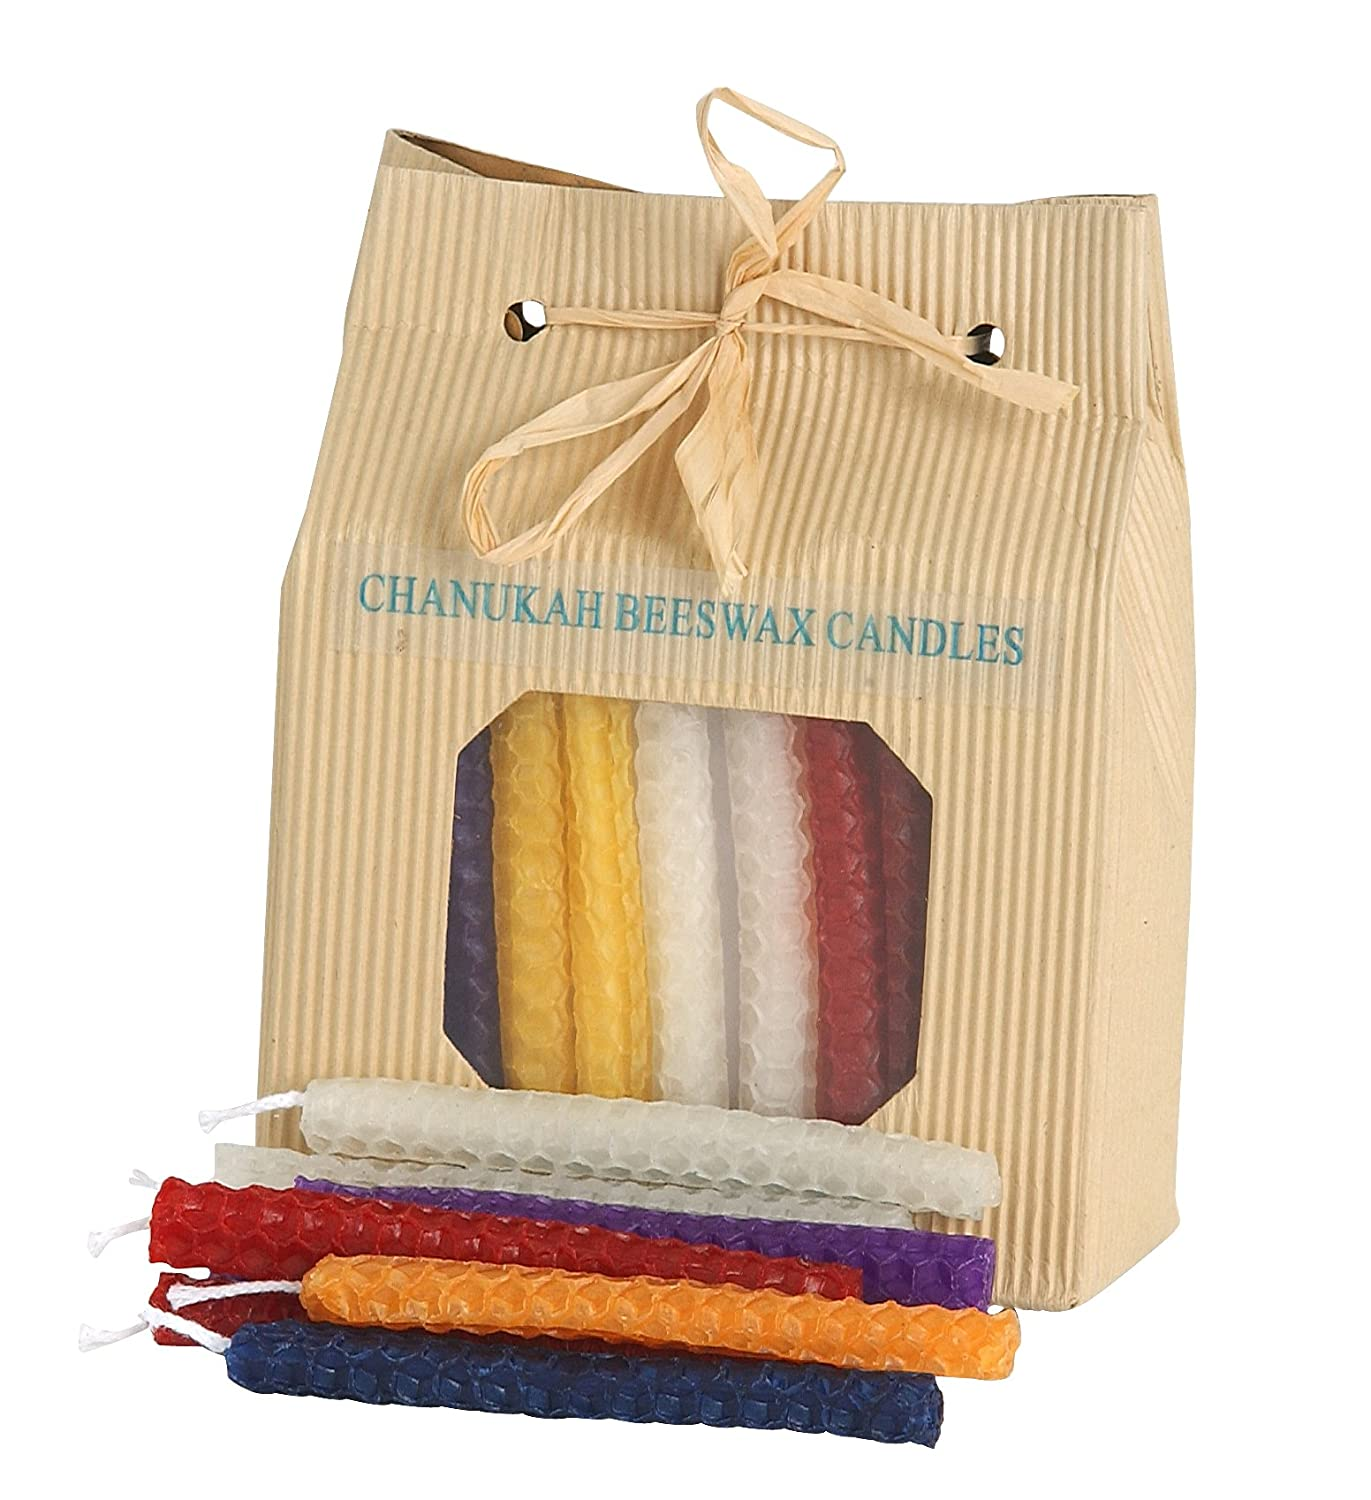 Chanukah Candles for Menorah Hanukkah Celebrations 45 Beeswax Candles Multi Colors Israel Gifts